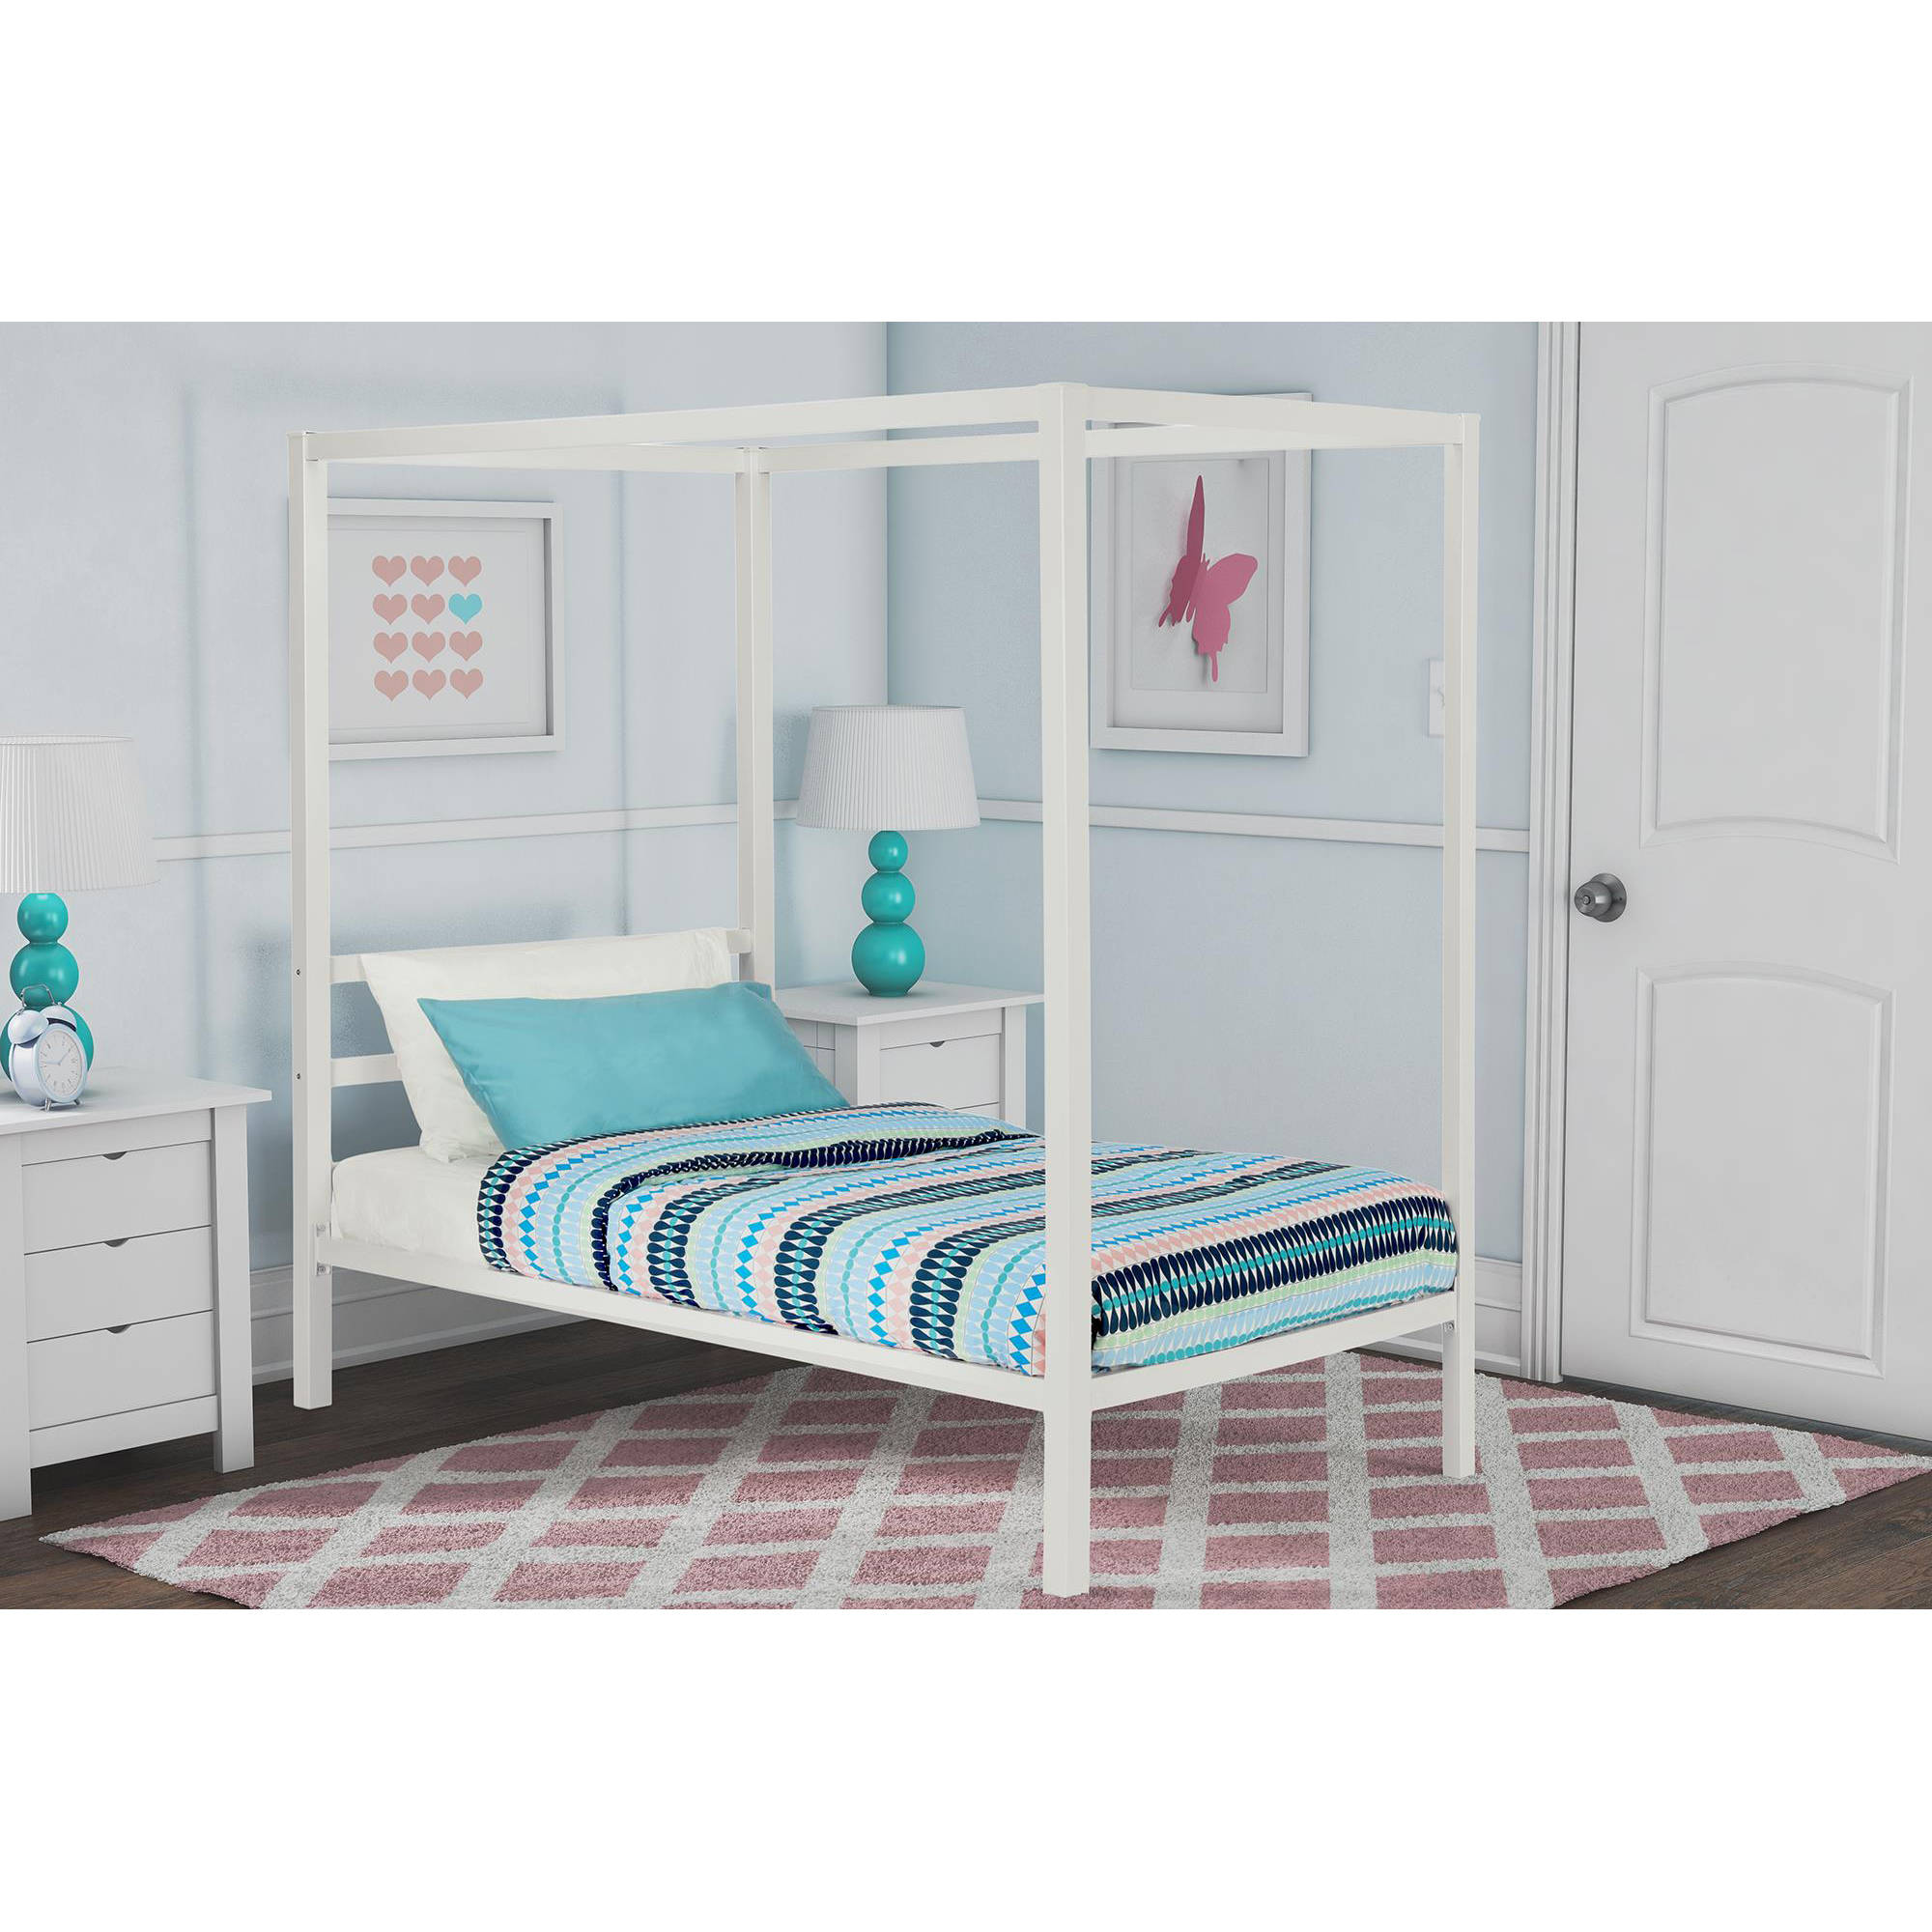 sc 1 st  Walmart & DHP Modern Metal Canopy Bed Multiple Colors and Sizes - Walmart.com